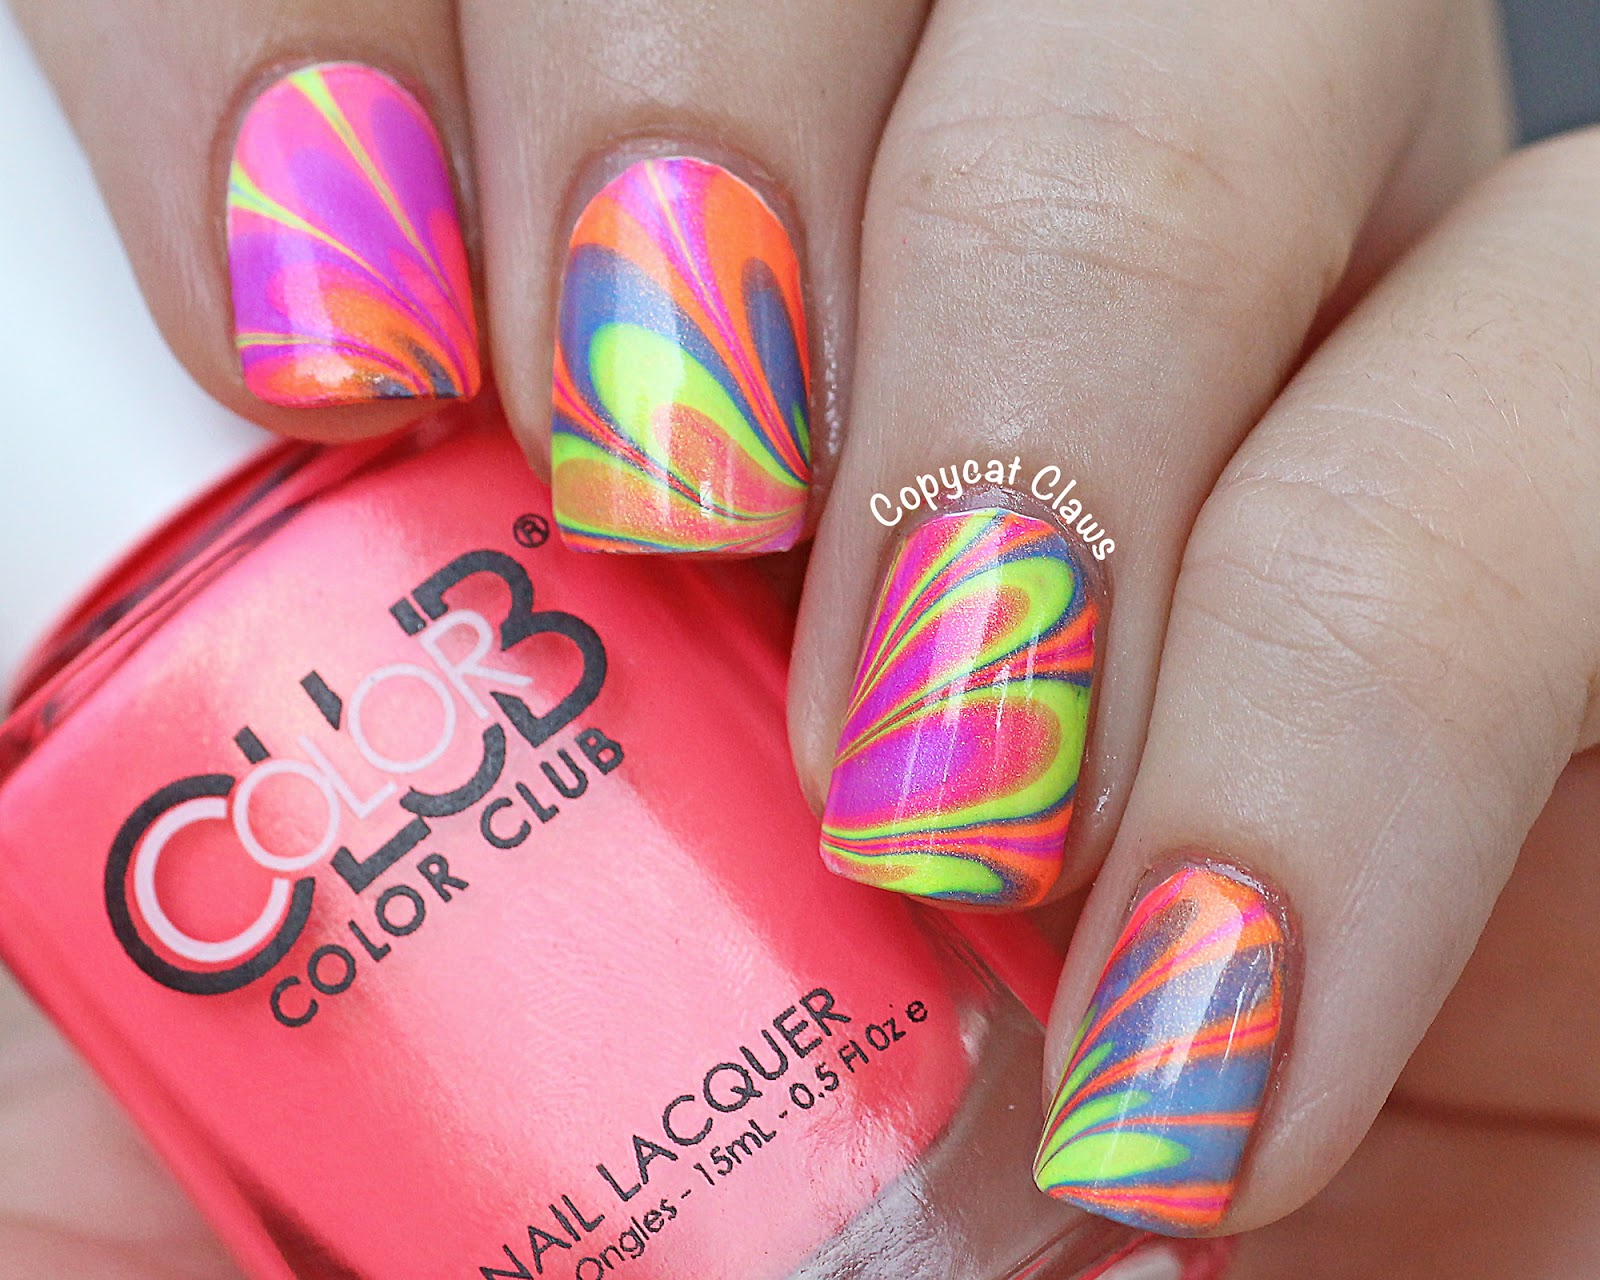 Copycat claws color club poptastic neon water marble nail art prinsesfo Gallery